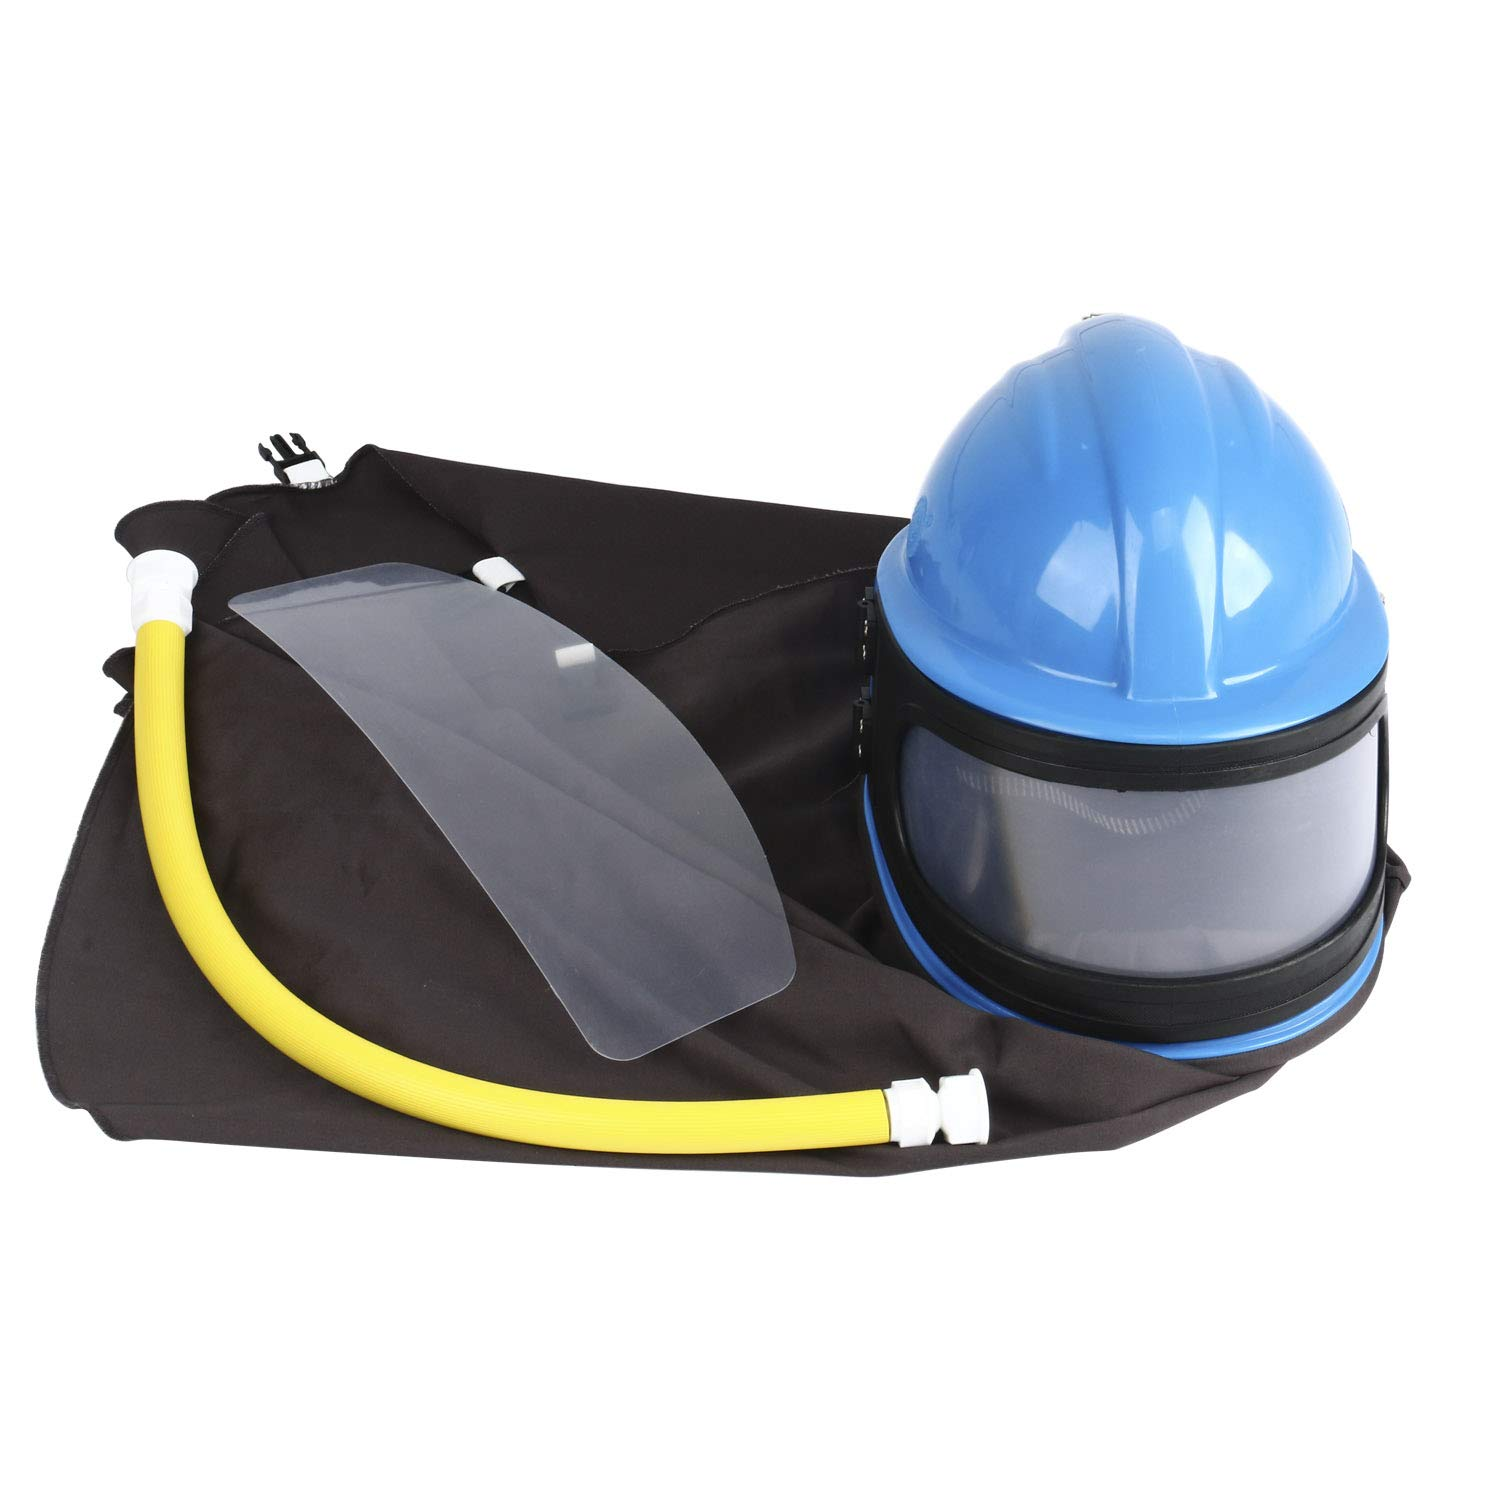 AIR Supplied Safety Sandblast Helmet Sandblasting Hood Protector (BLUE) by YaeKoo